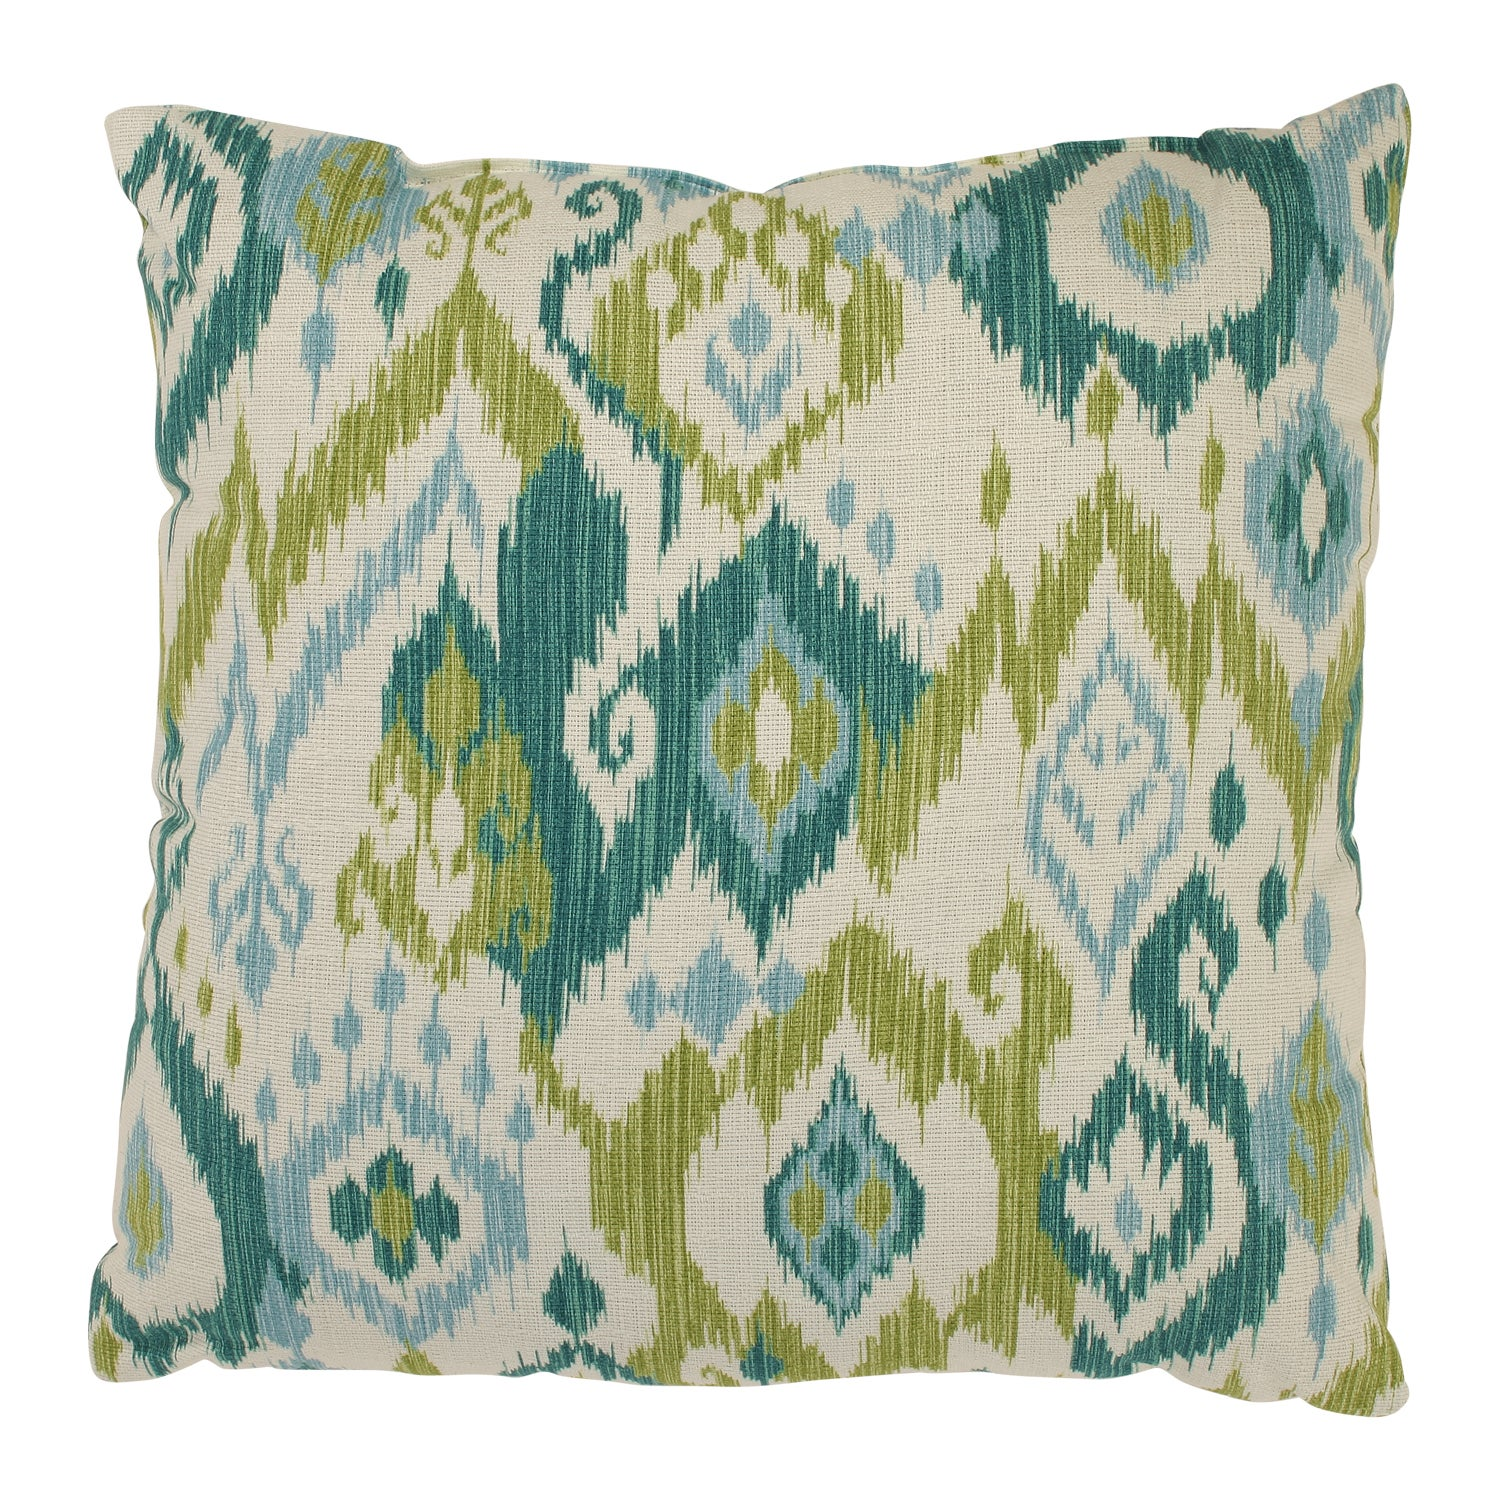 Gunnison 16.5-inch Throw Pillow